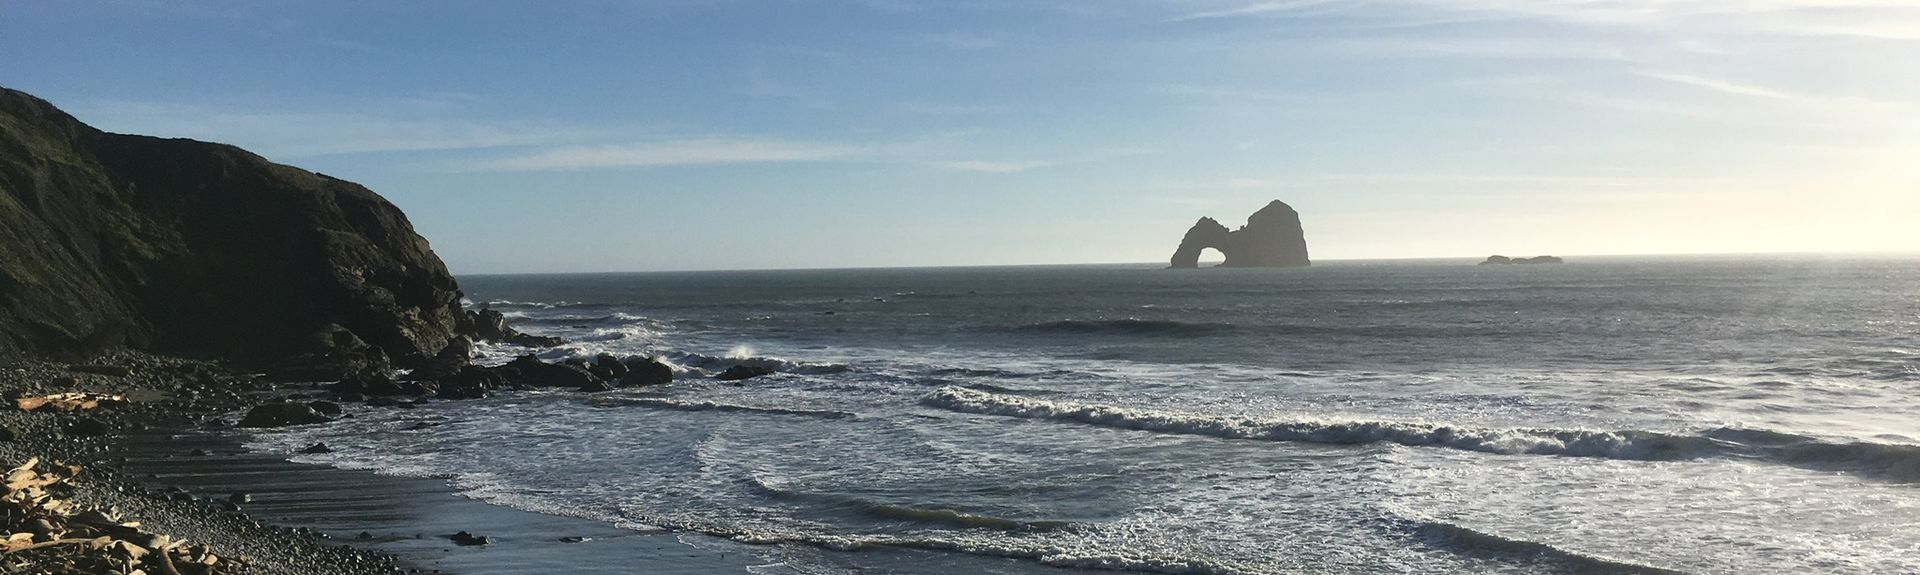 Otter Point State Recreation Site, Gold Beach, Oregon, United States of America